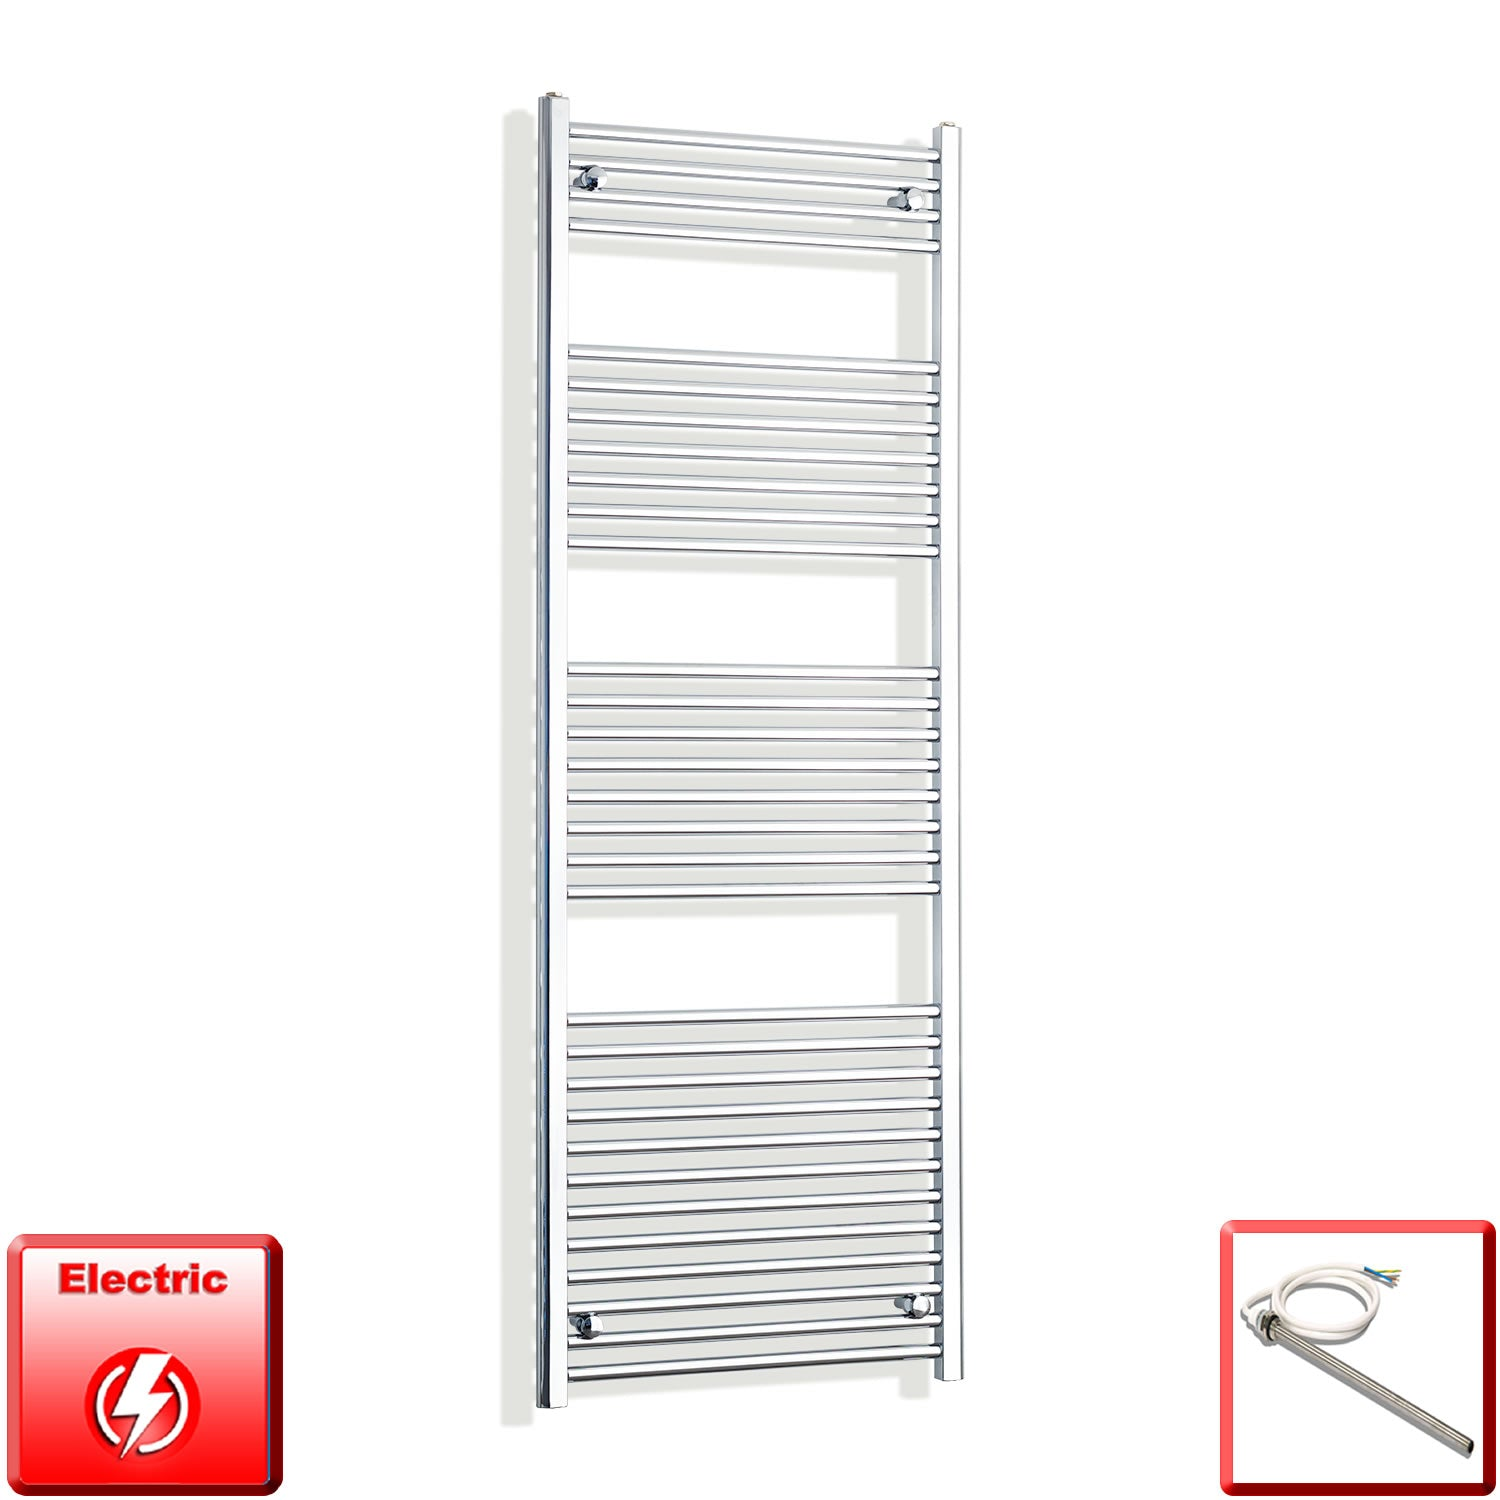 650mm Wide 1800mm High Pre-Filled Chrome Electric Towel Rail Radiator With Single Heat Element